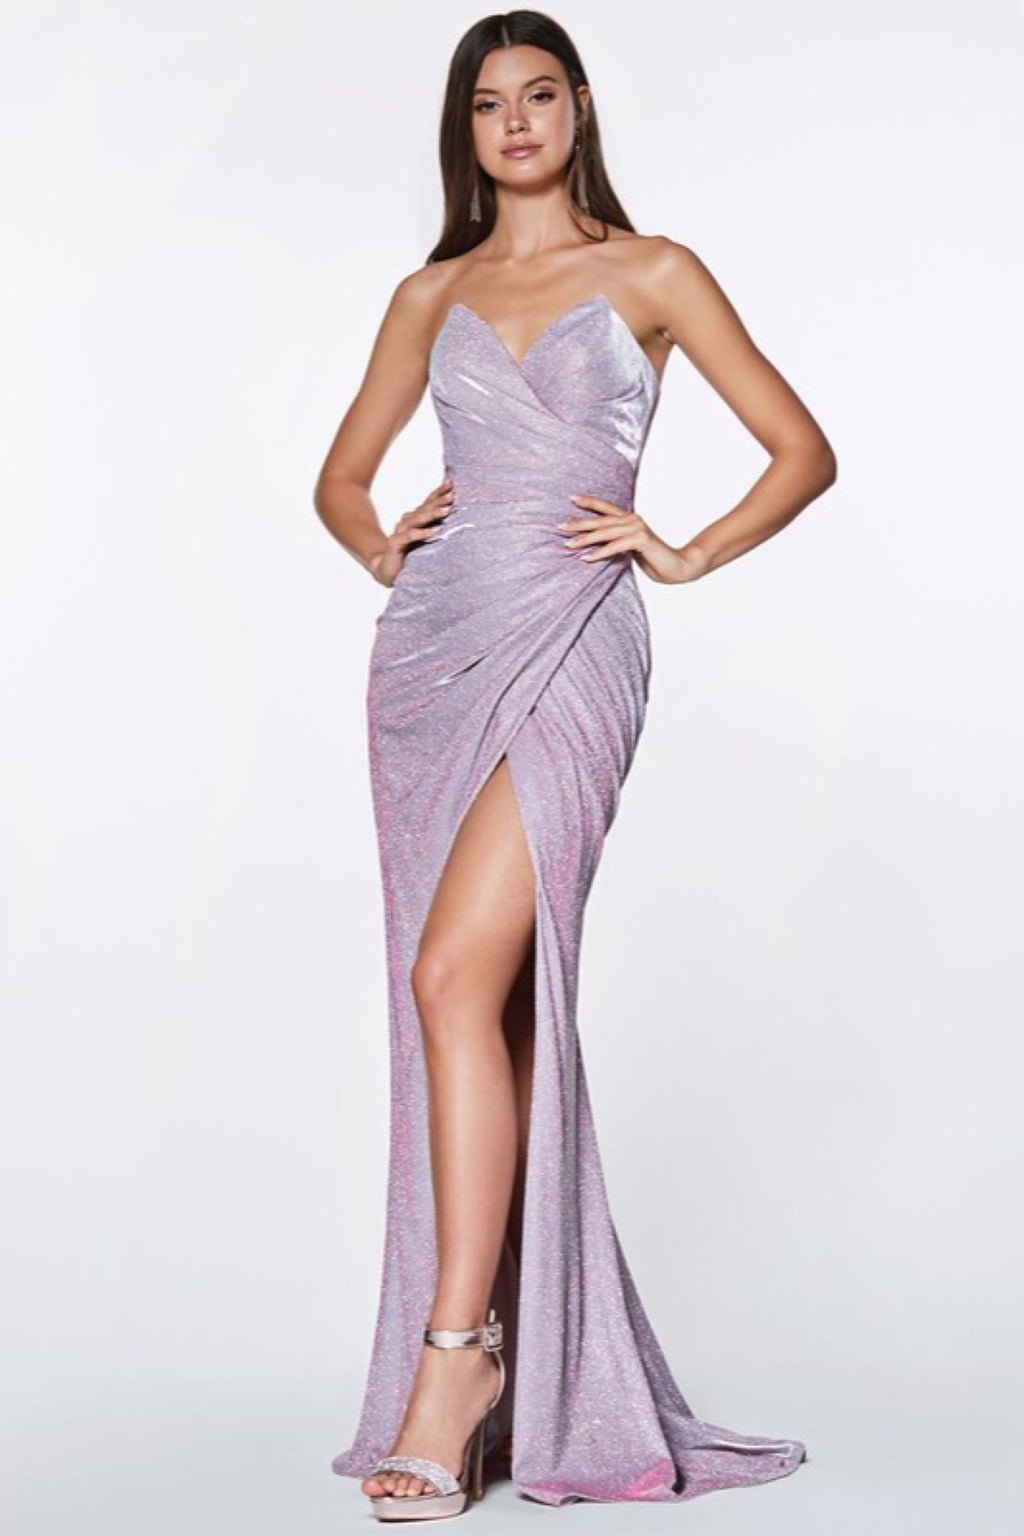 Aphrodite Love Maxi Glam Dress